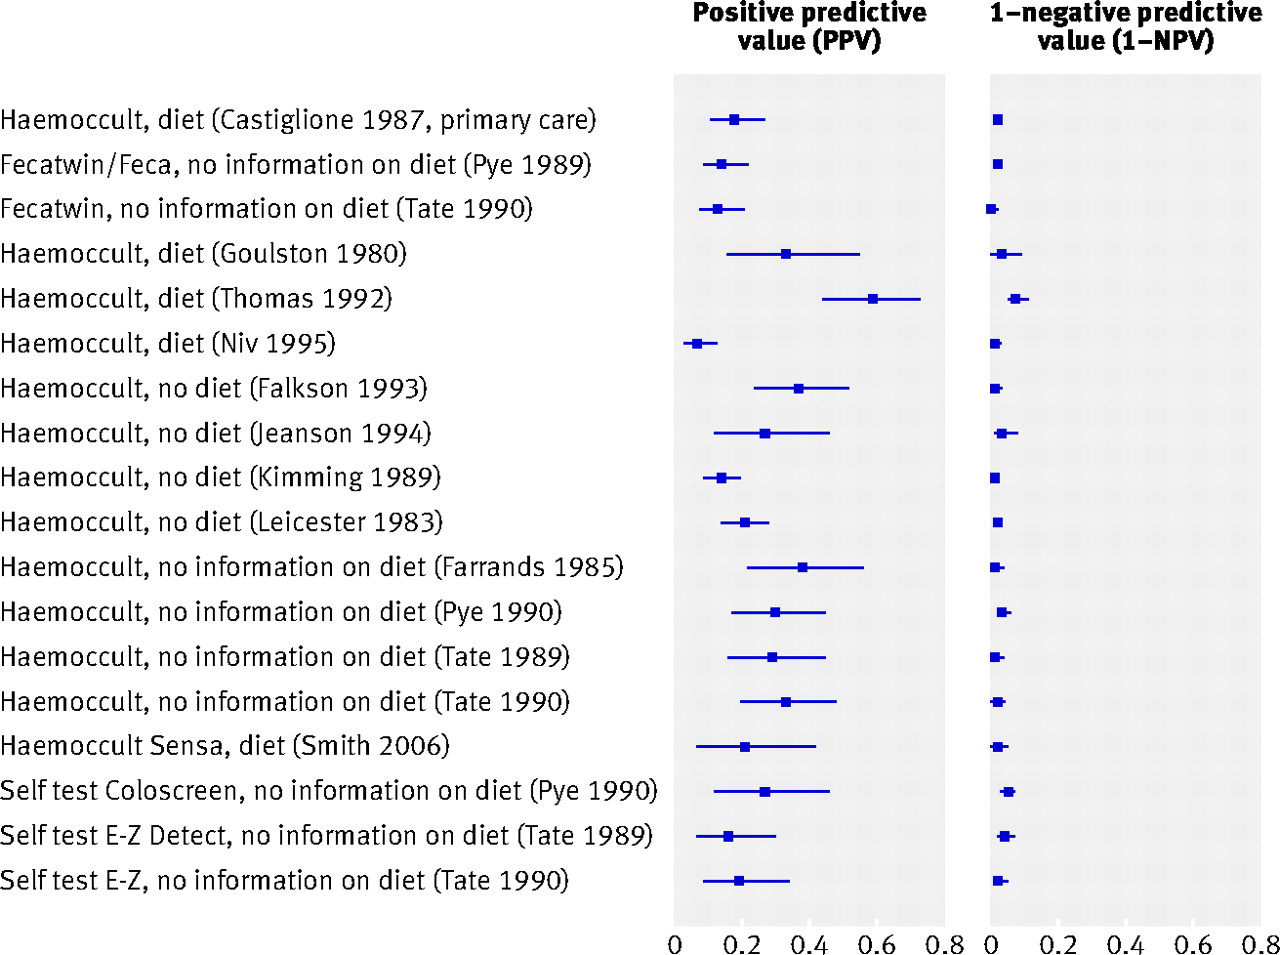 Value Of Symptoms And Additional Diagnostic Tests For Colorectal Cancer In Primary Care